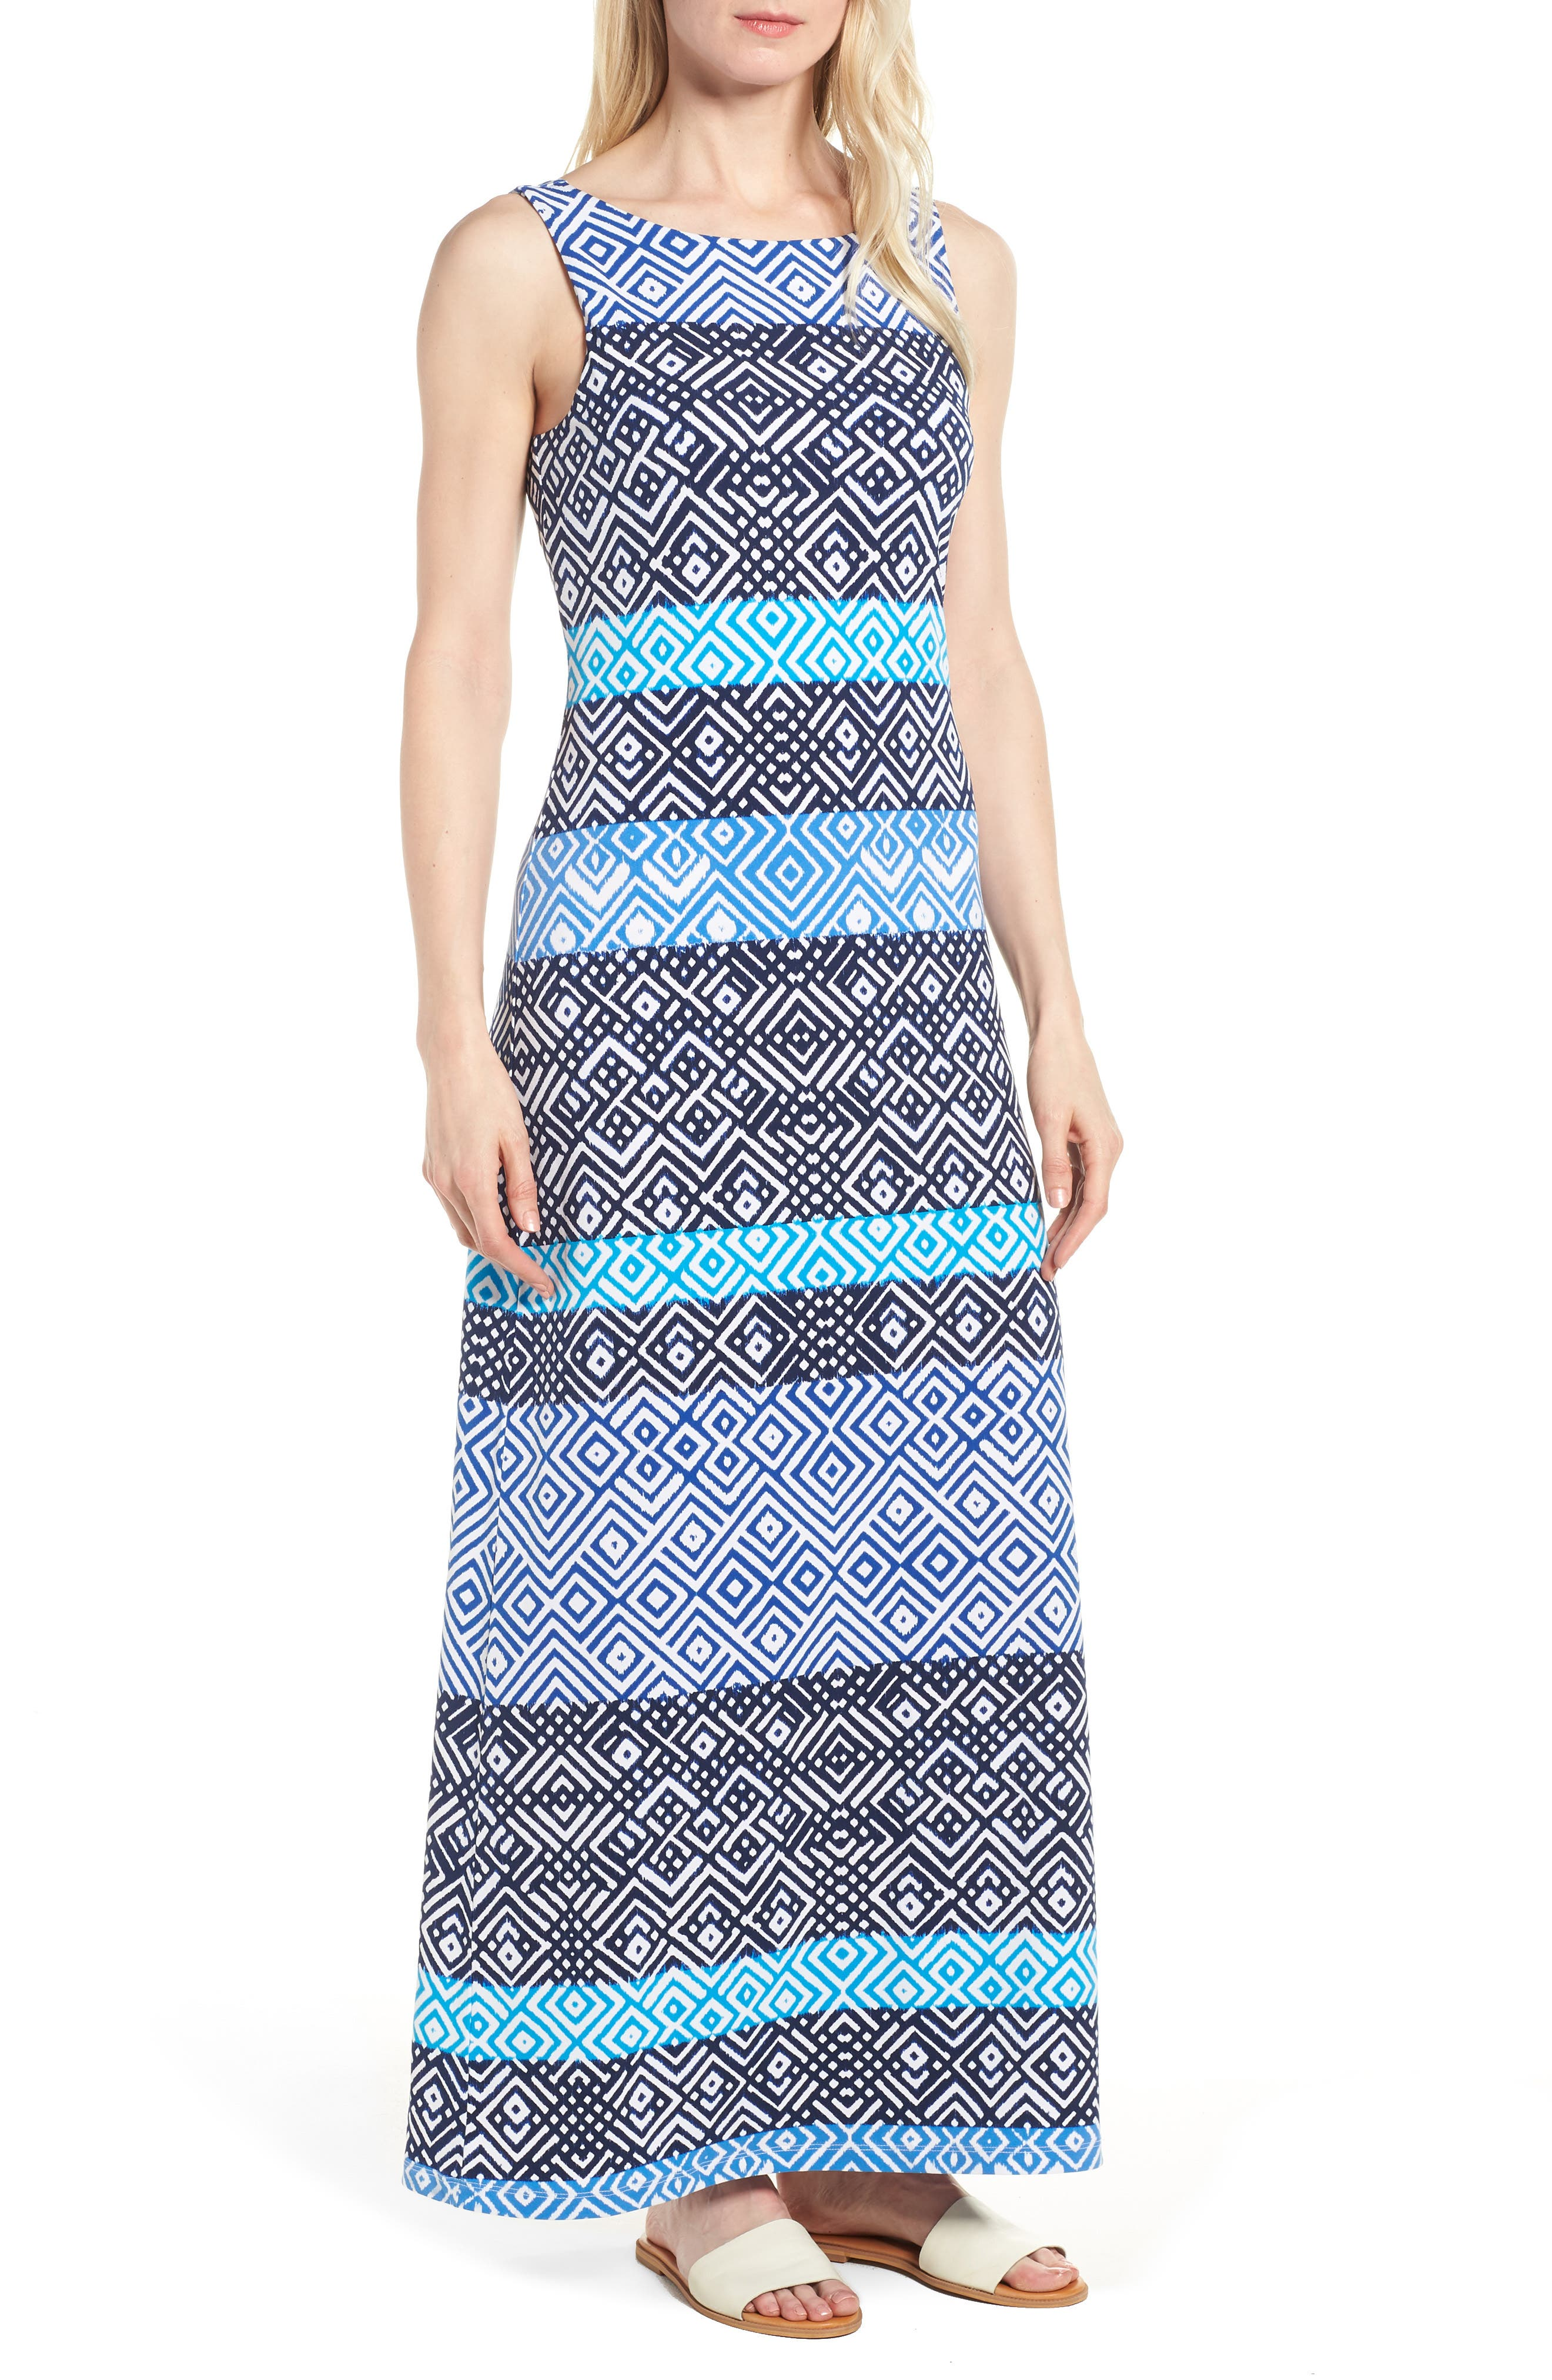 TOMMY BAHAMA,                             Mayan Maze Maxi Dress,                             Main thumbnail 1, color,                             OCEAN DEEP